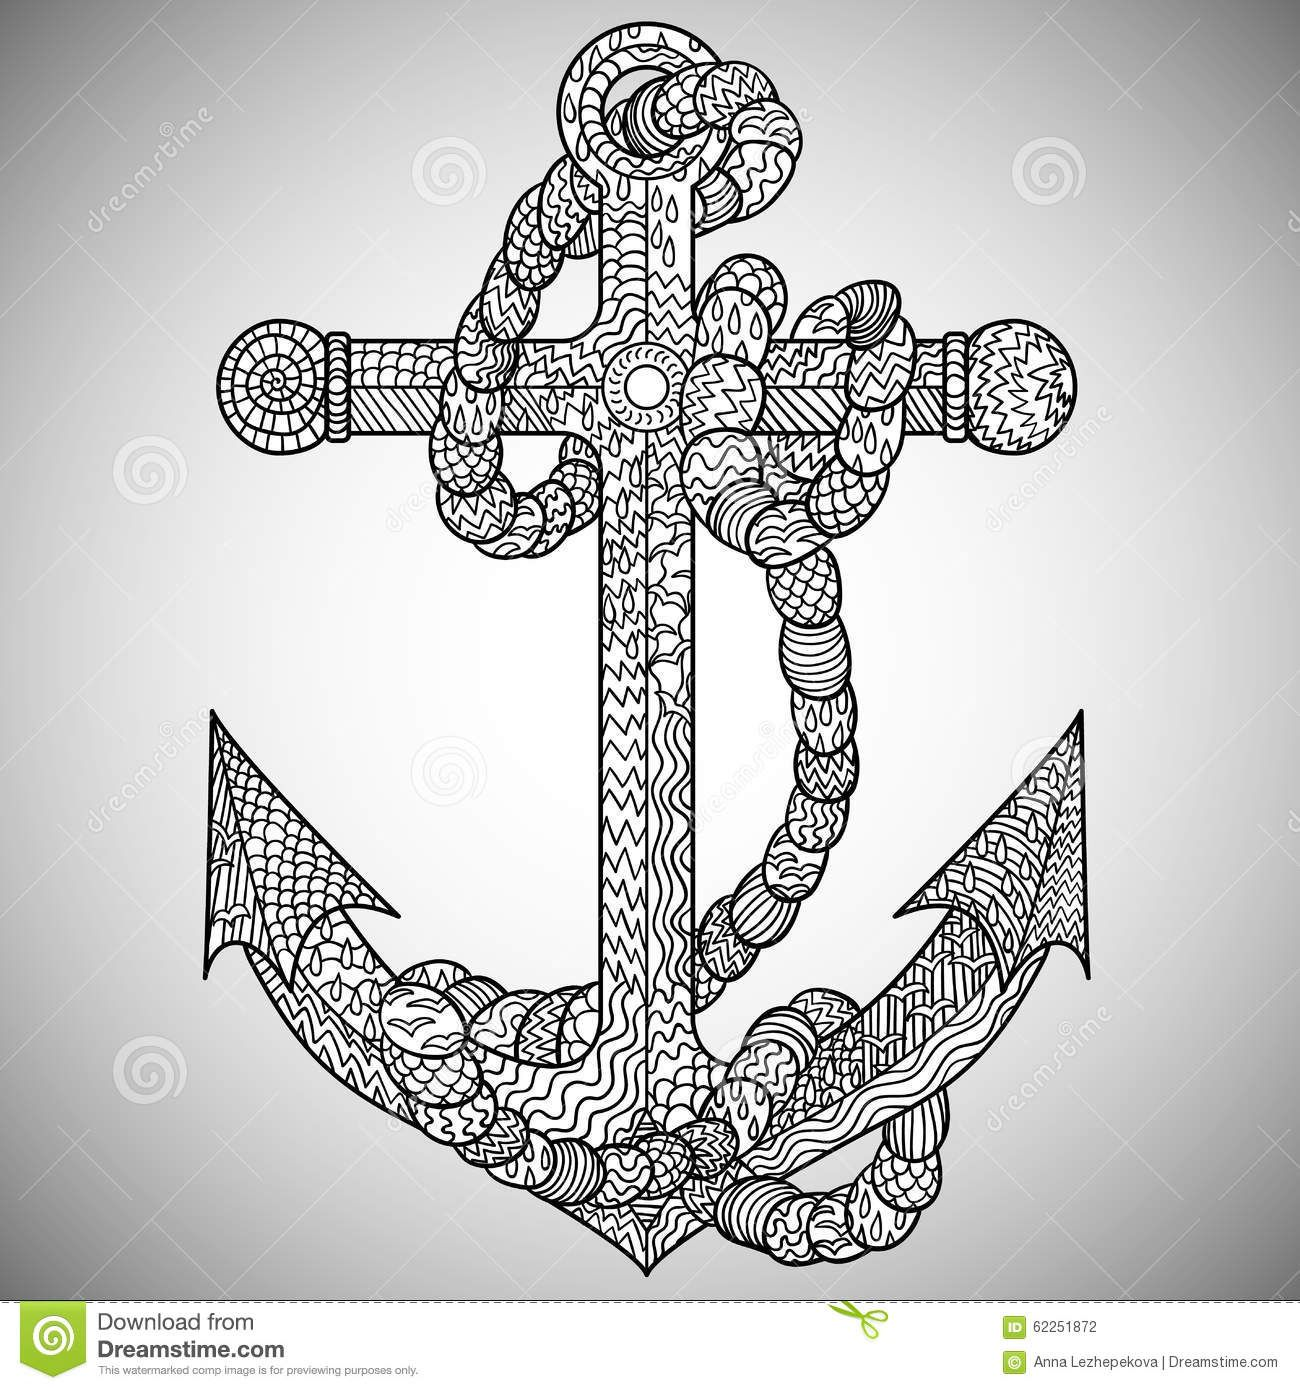 Coloring pages for adults anchor google search